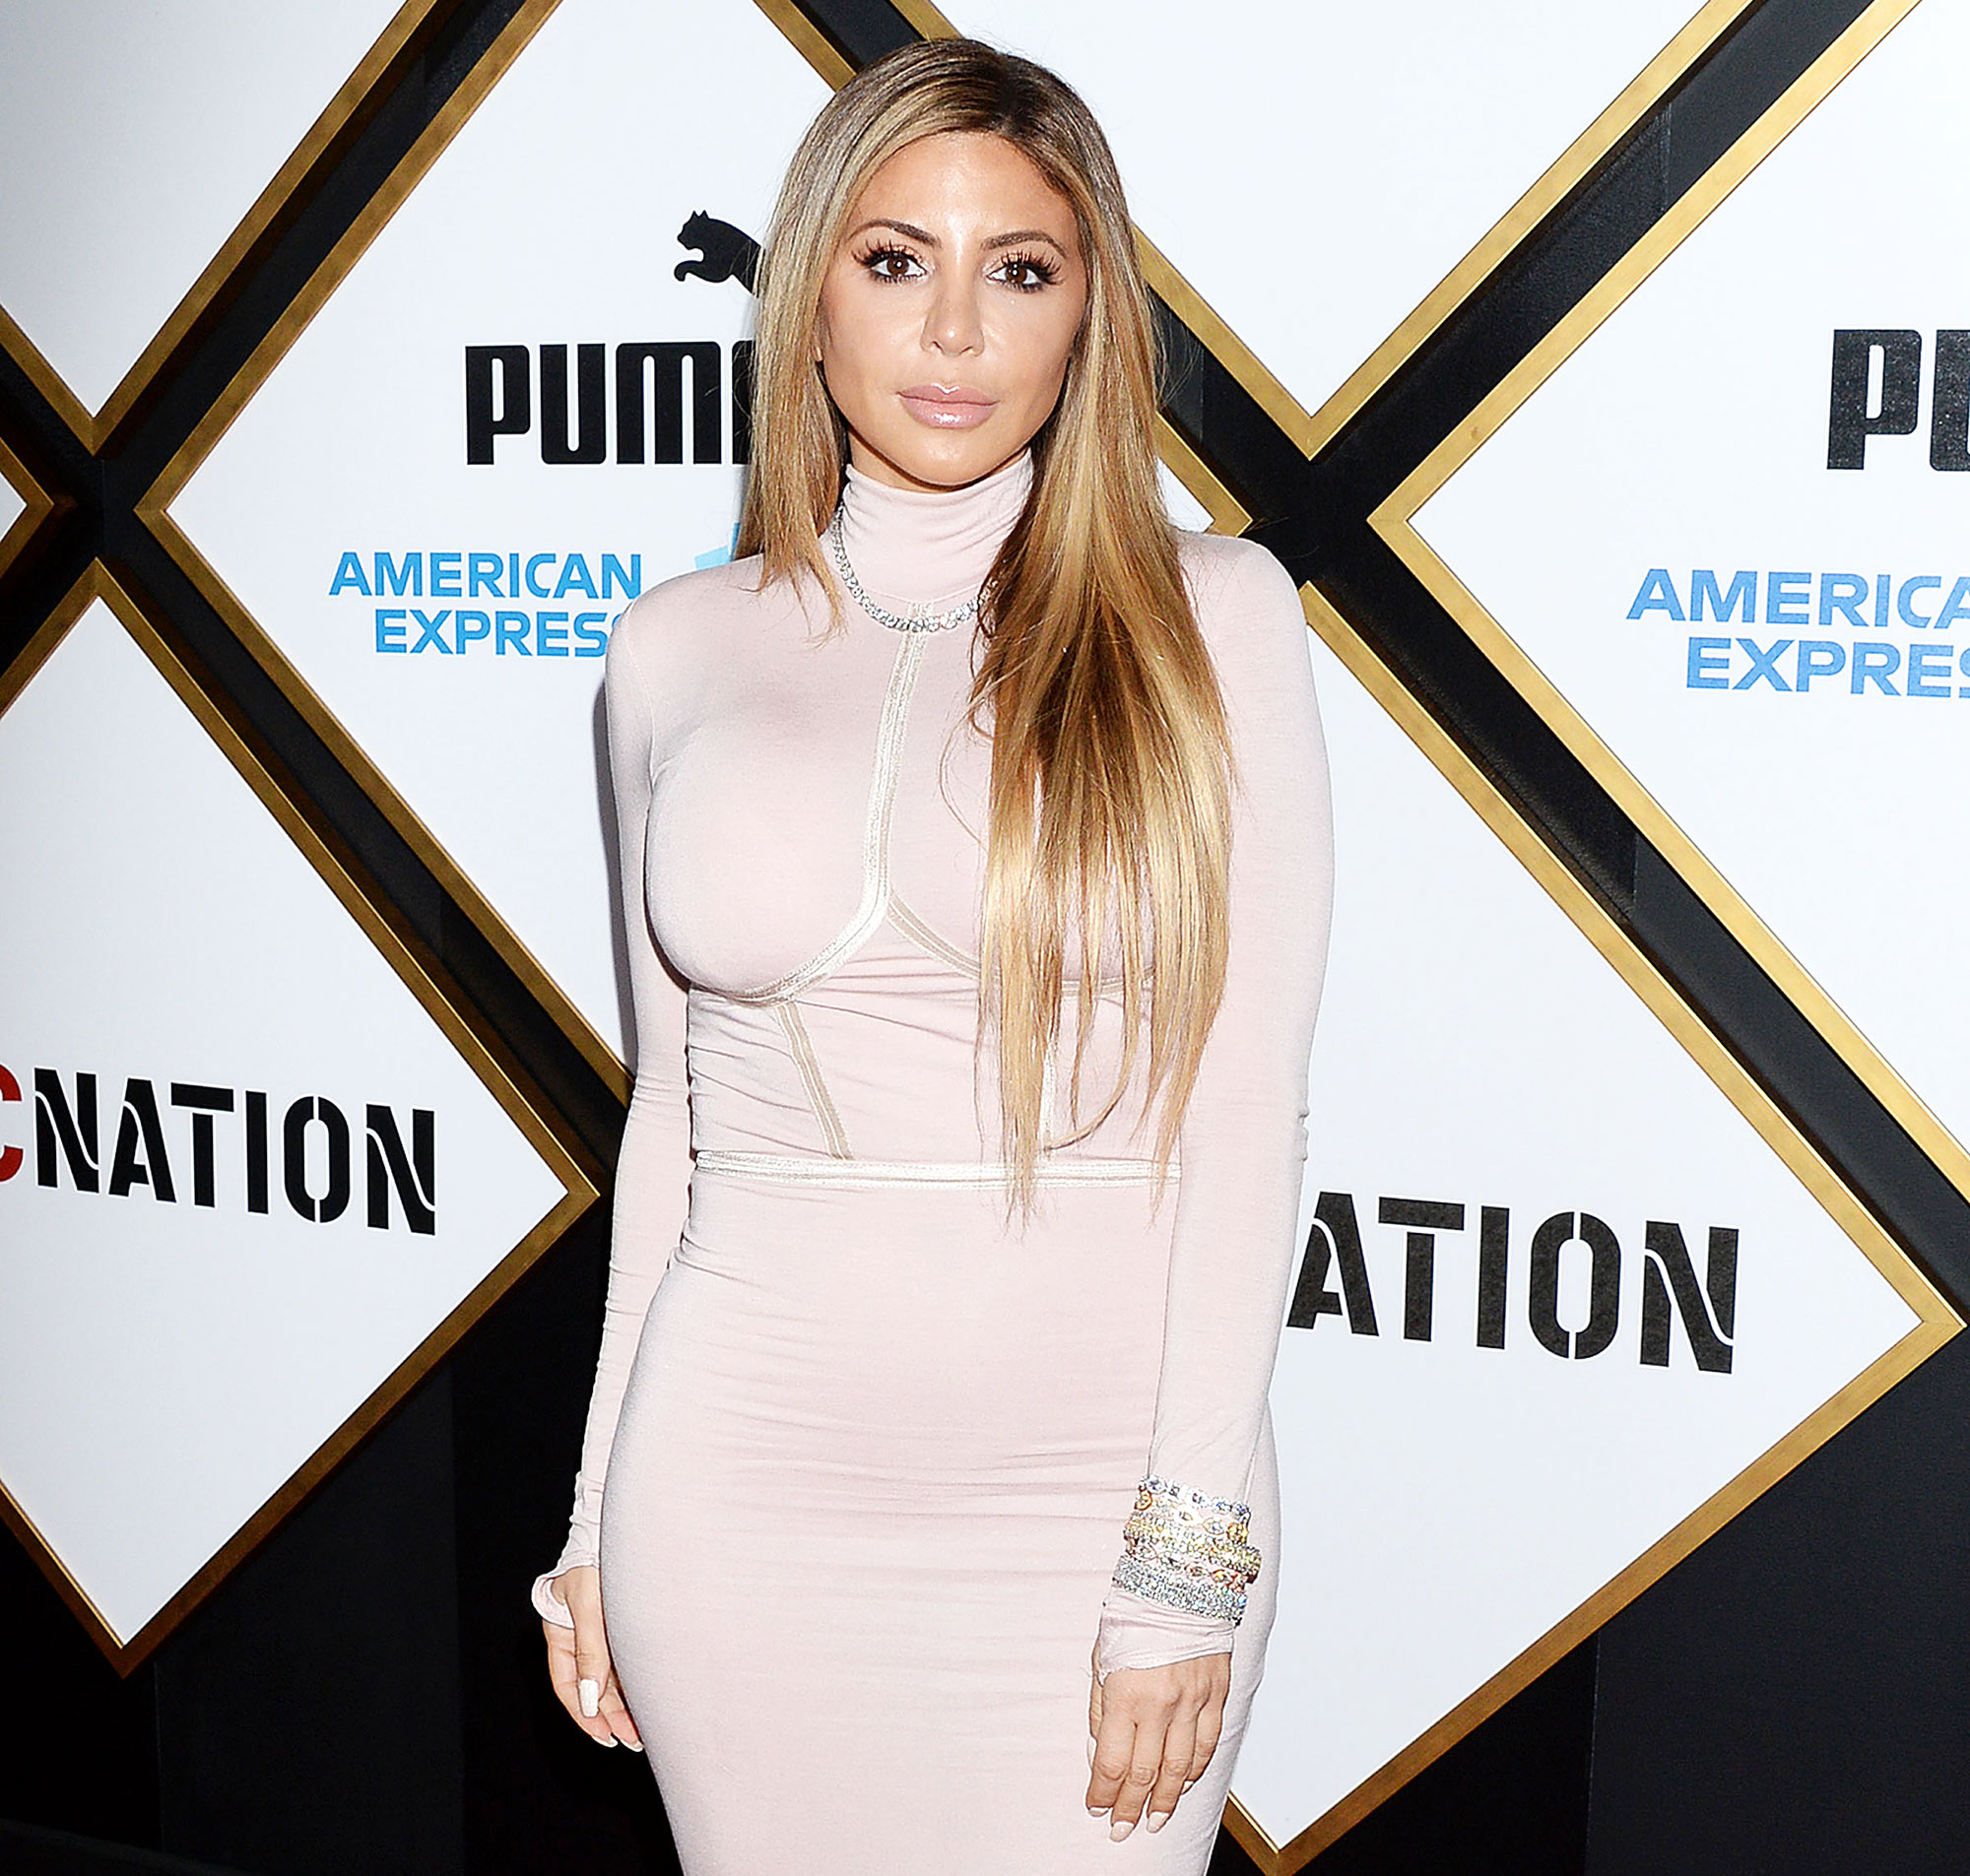 Larsa Pippen attends the ROC Nation Pre-Grammy Brunc Larsa Pippen Says She Tested Positive for COVID-19 Amid Kardashian Drama